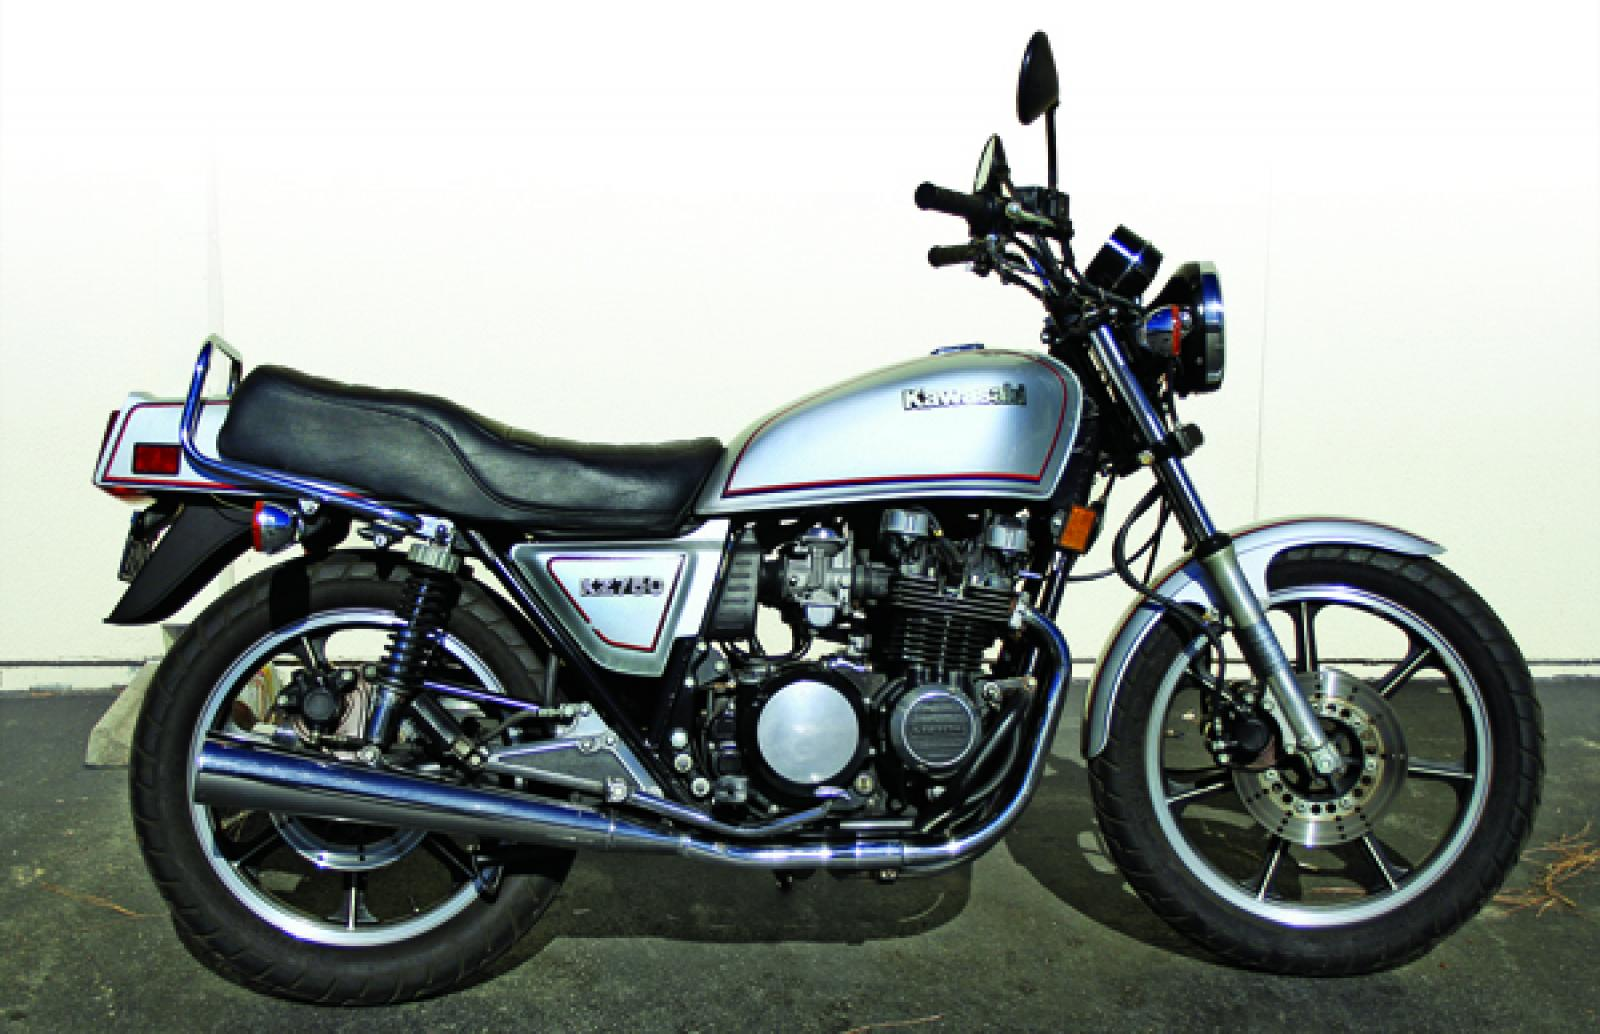 1980 Kawasaki Z750 Ltd Kz750 Four Wiring Diagram Gallery